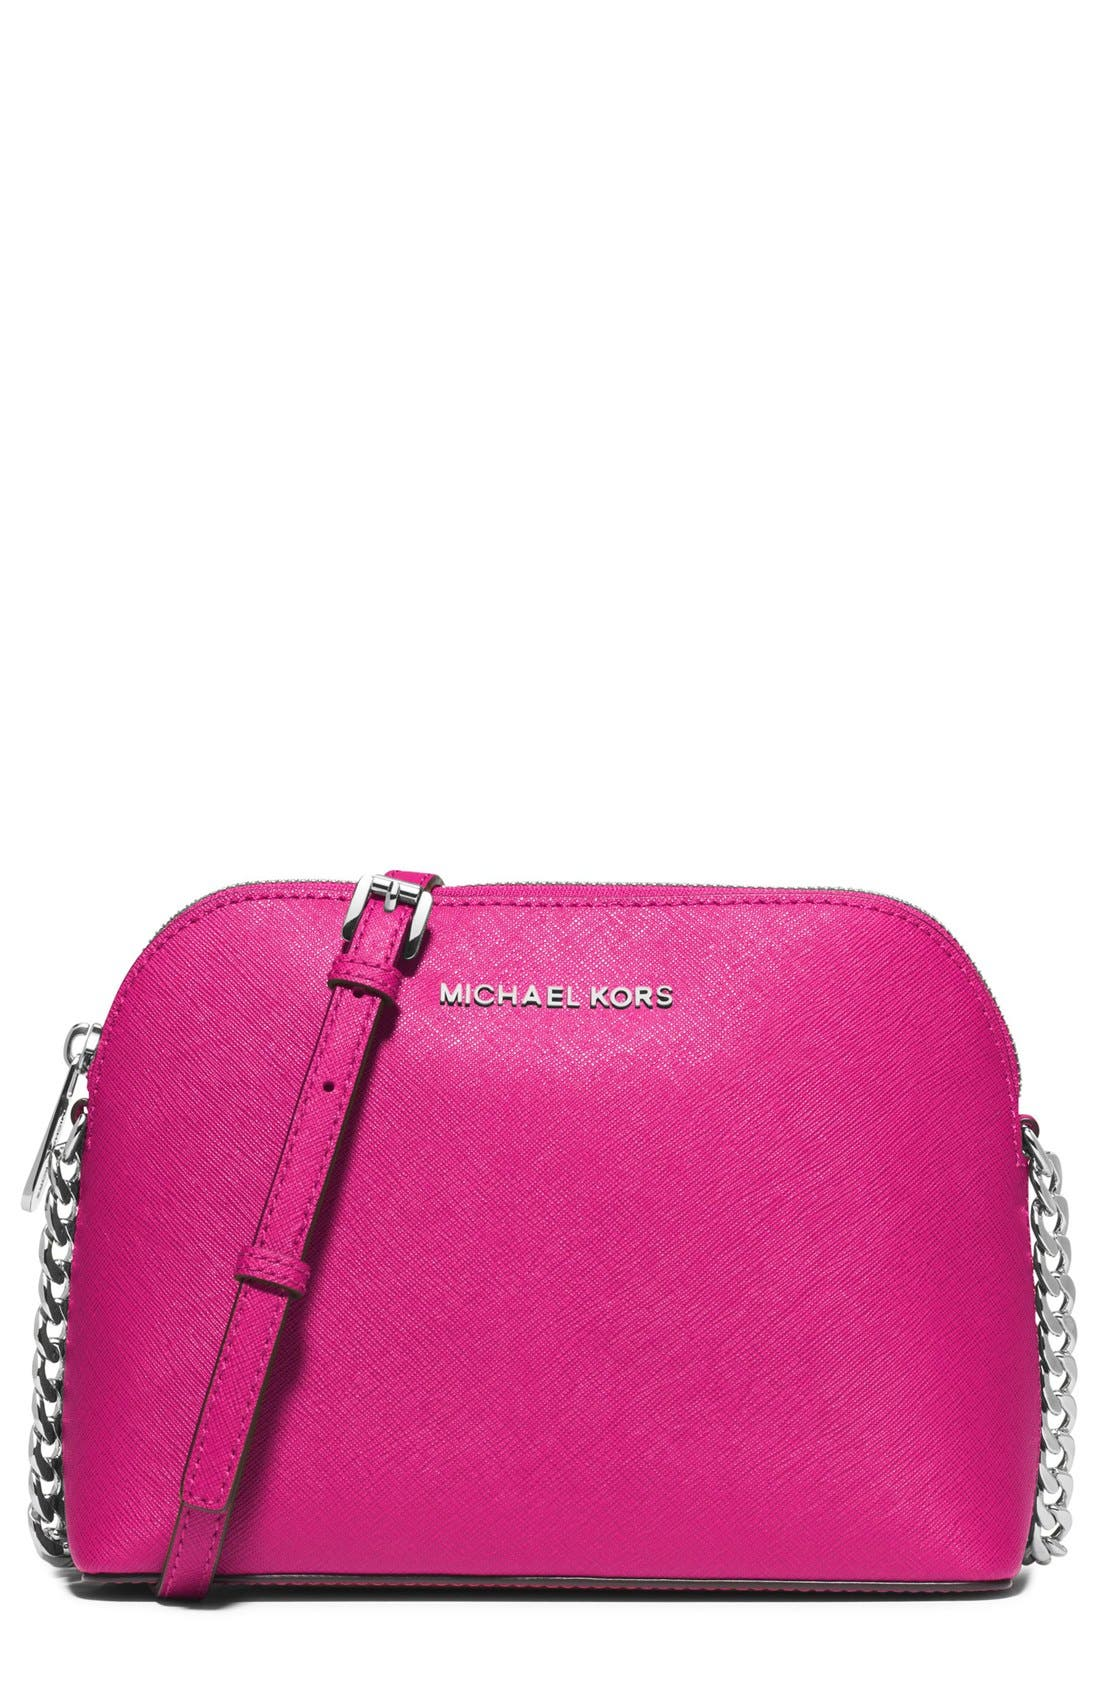 ,                             'Large Cindy' Saffiano Leather Crossbody Bag,                             Main thumbnail 22, color,                             655